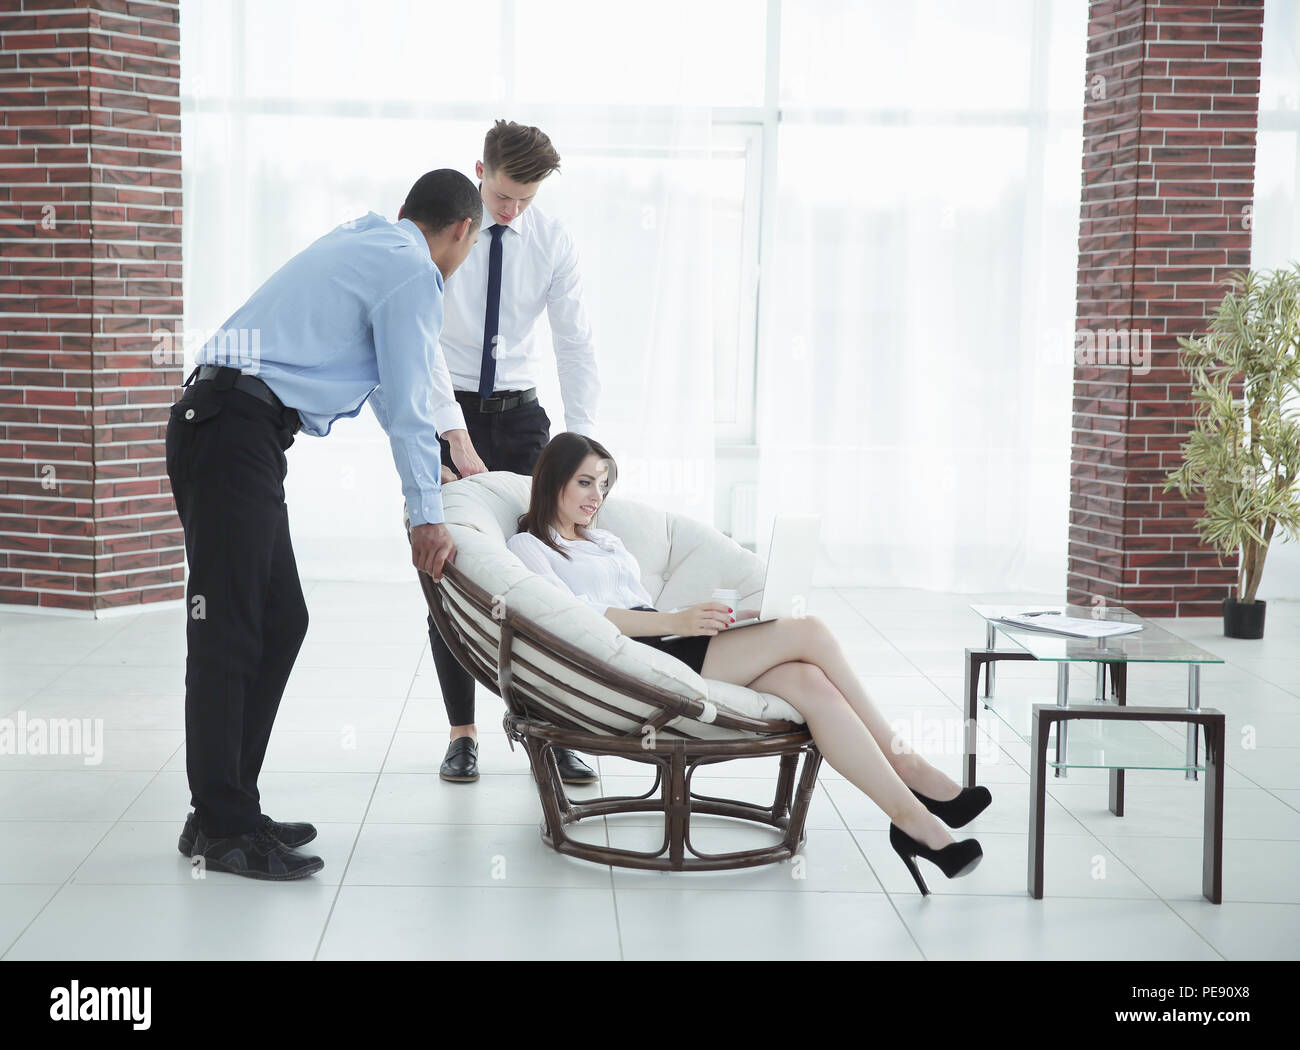 business woman with colleagues discussing work issues, - Stock Image